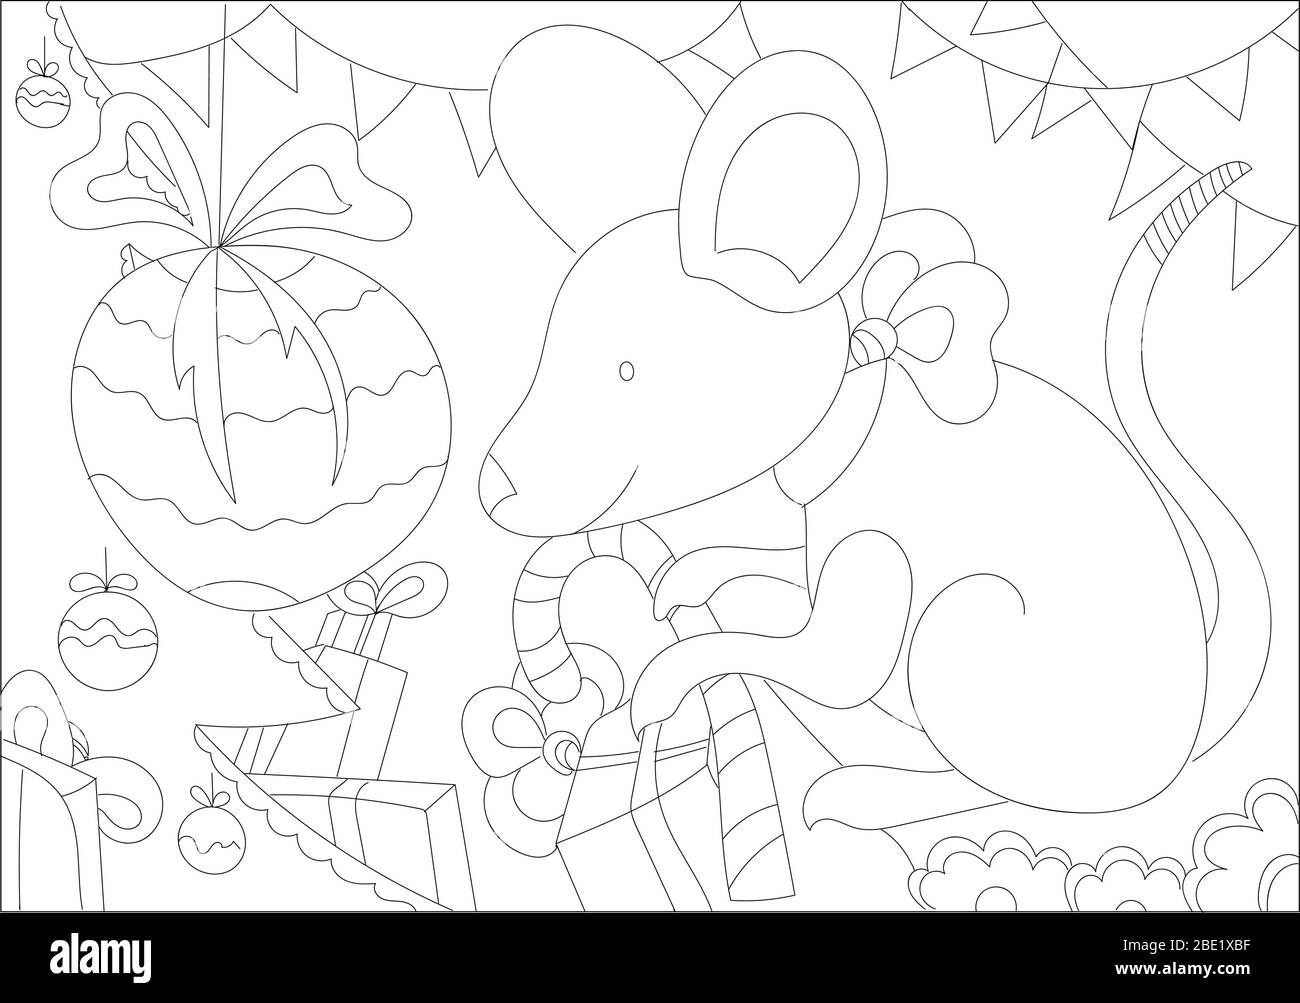 Coloring Pages High Resolution Stock Photography and Images - Alamy